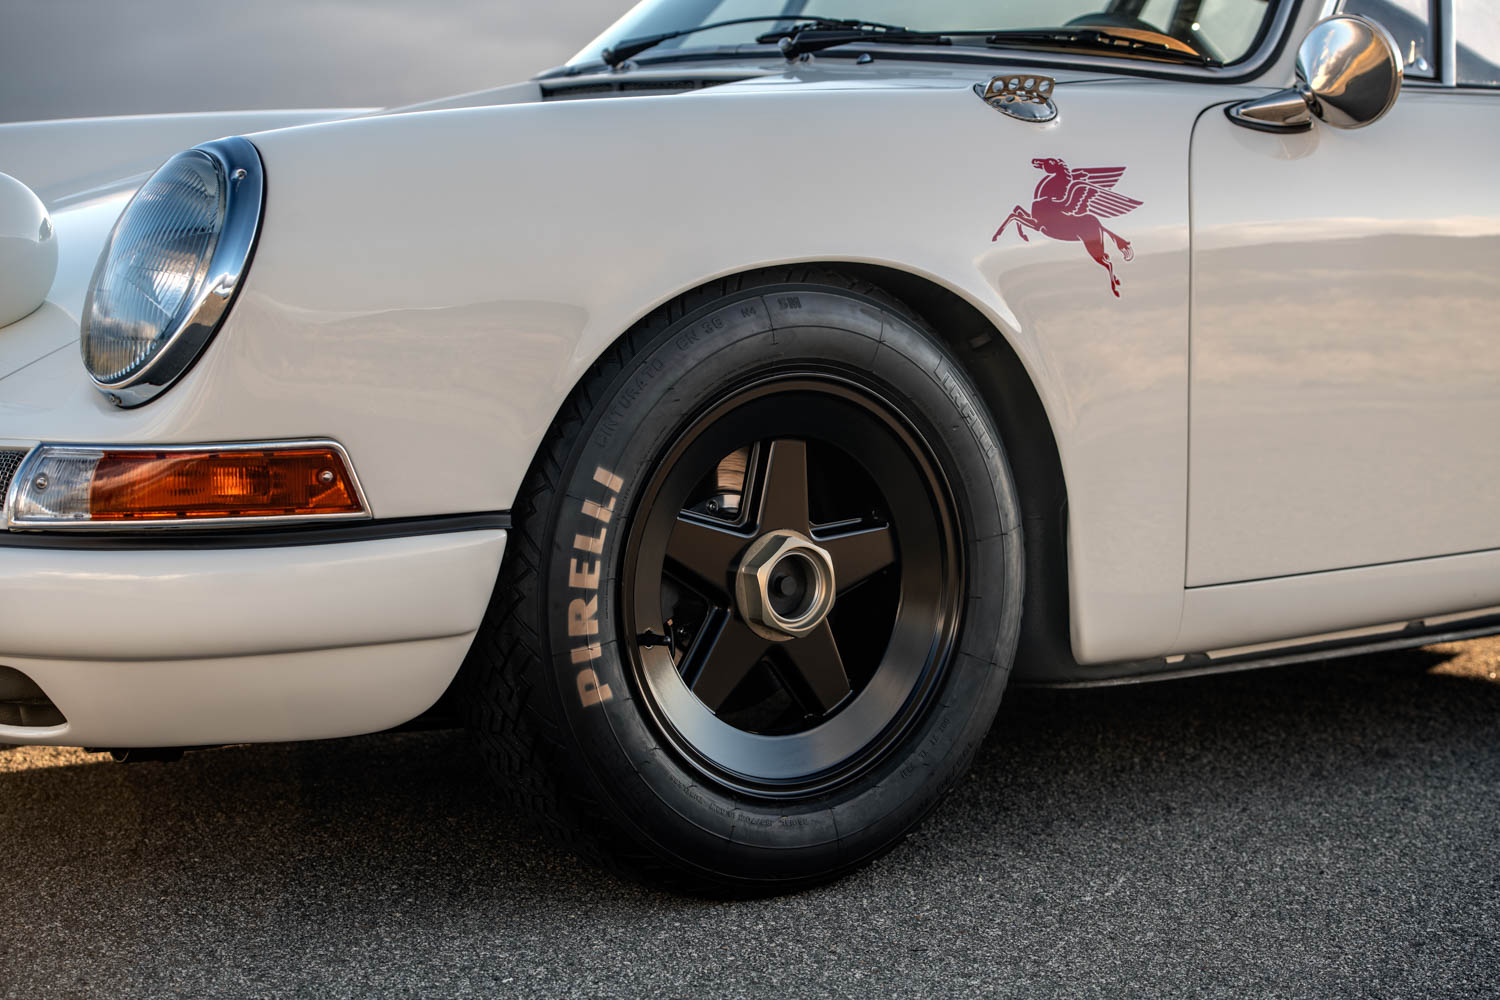 Emory Porsche 911K wheel detail